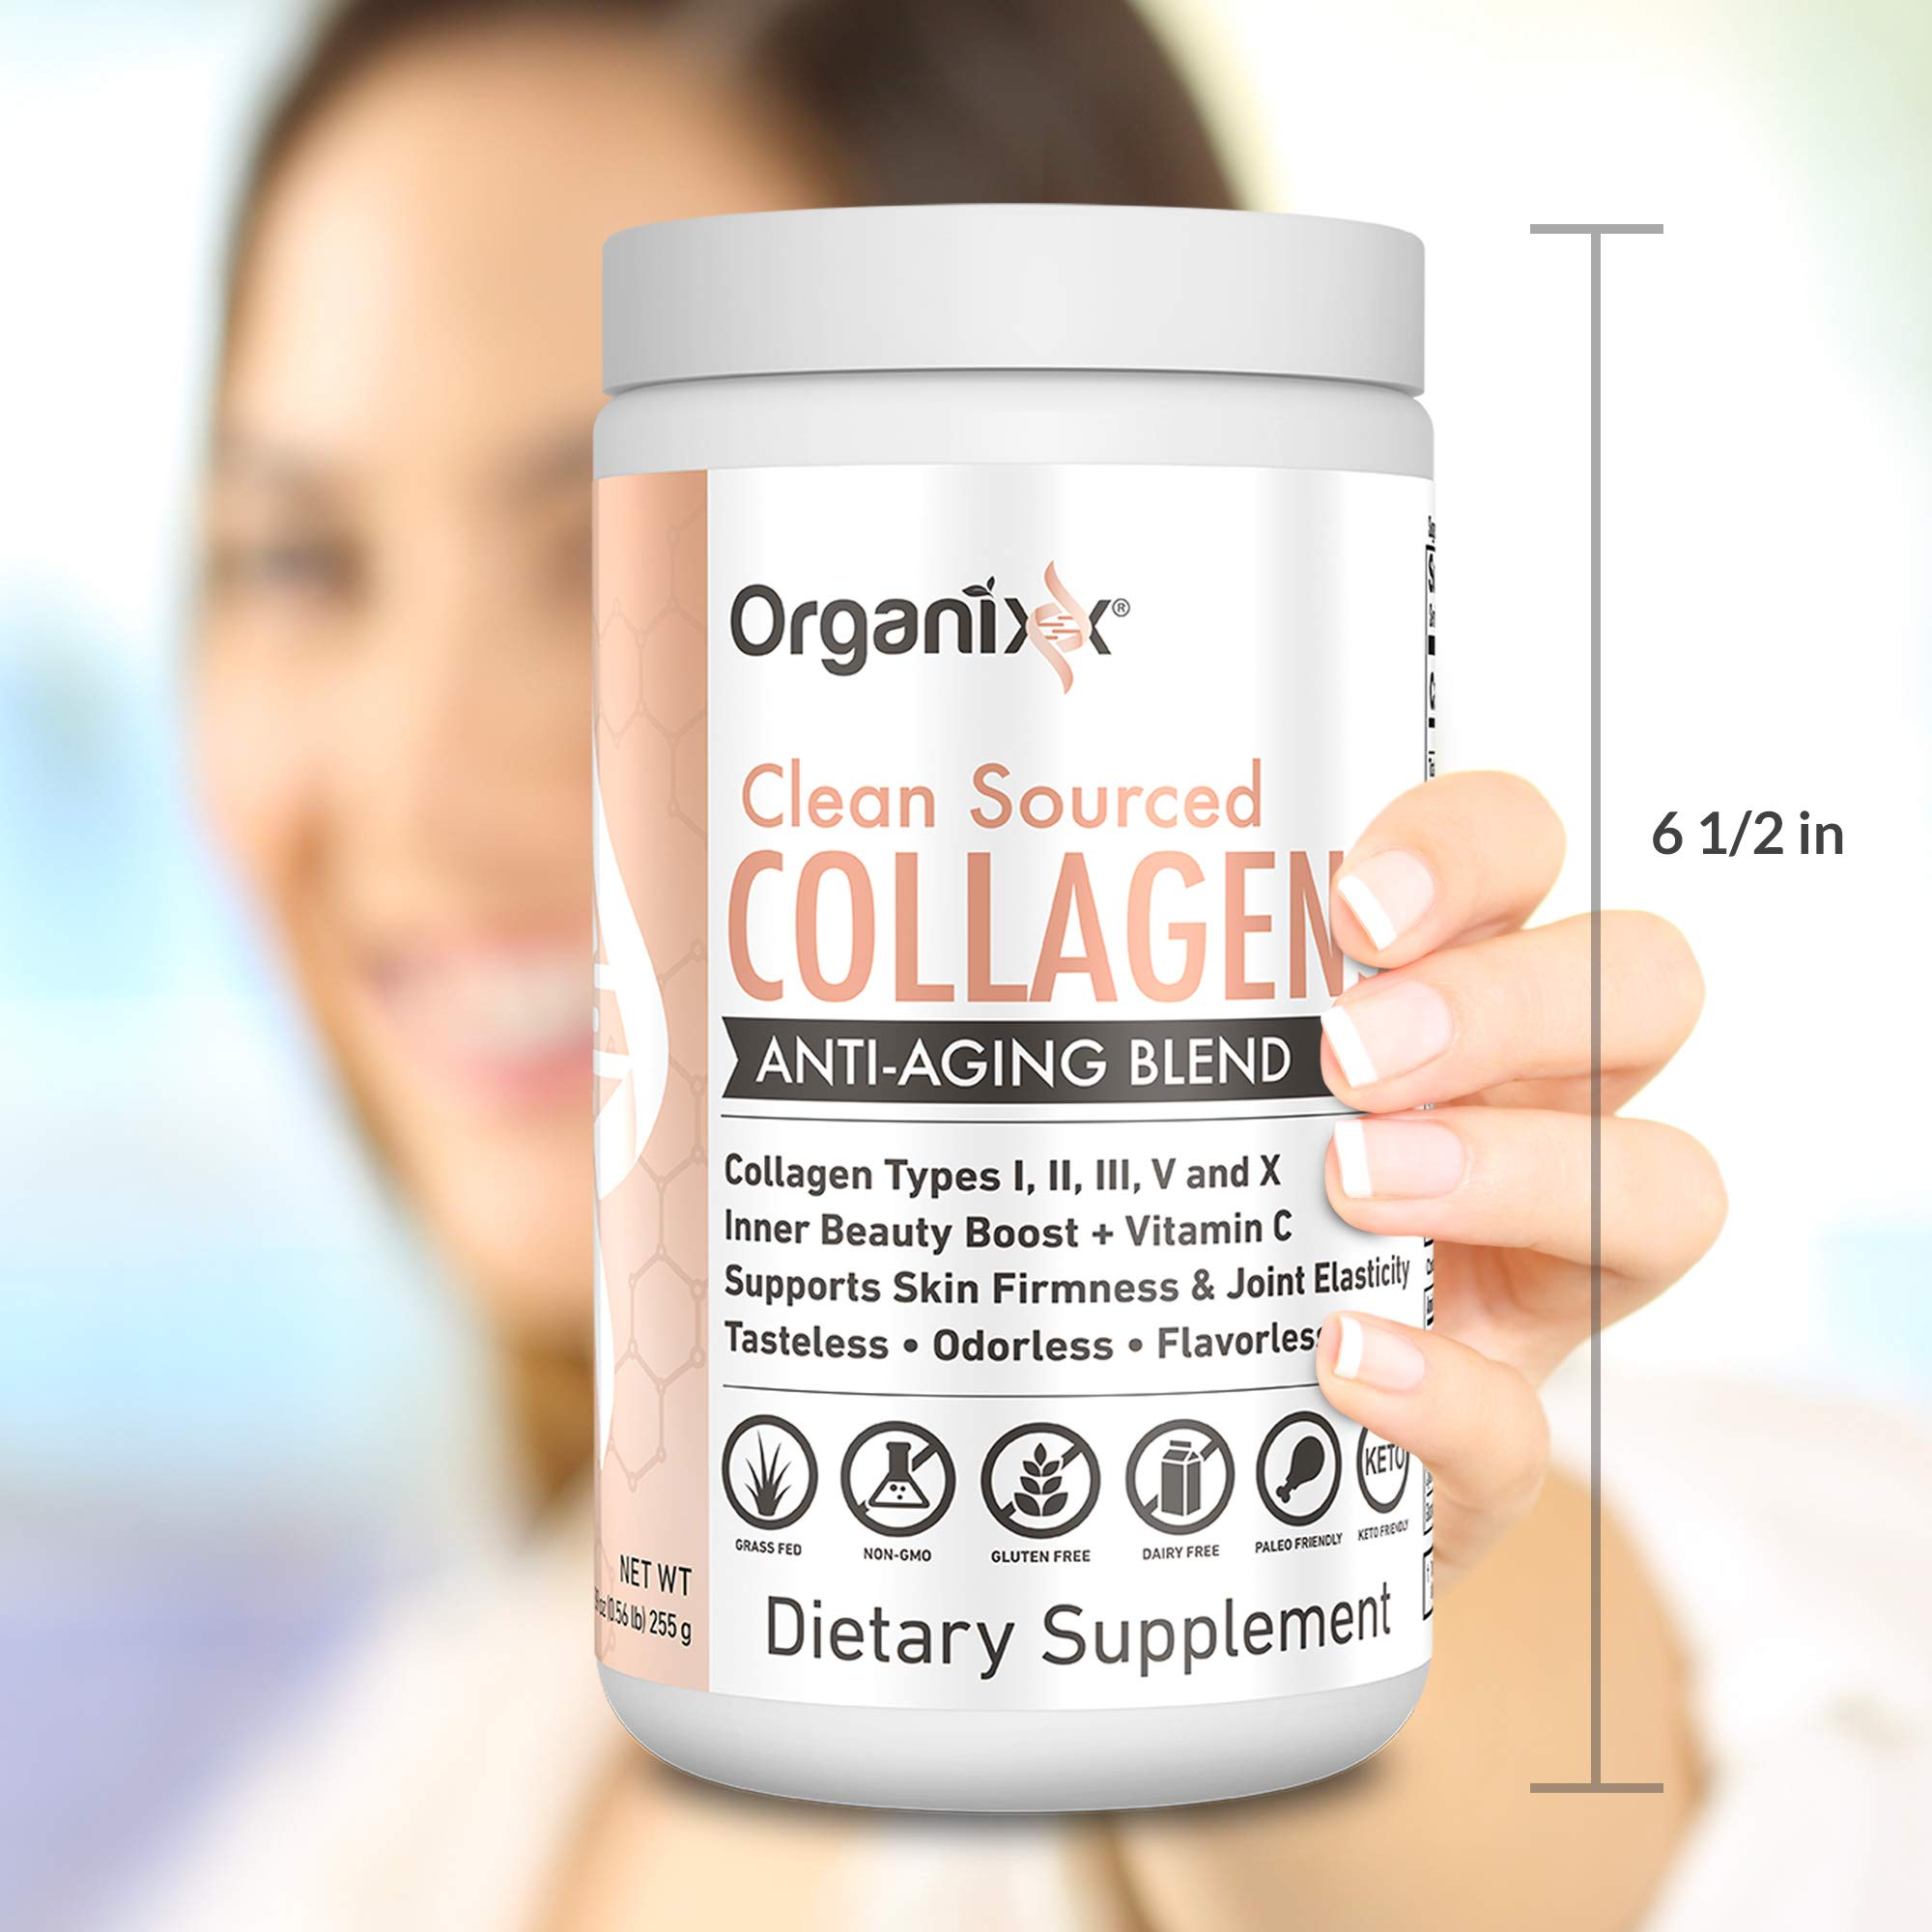 Collagen Powder - 5 types in 1 - Improves Hair, Skin and Nails - 4 Sources Including Marine Collagen and Bone Broth Collagen - Clean Sourced Collagens by Organixx (30 Servings) by ORGANIXX (Image #1)